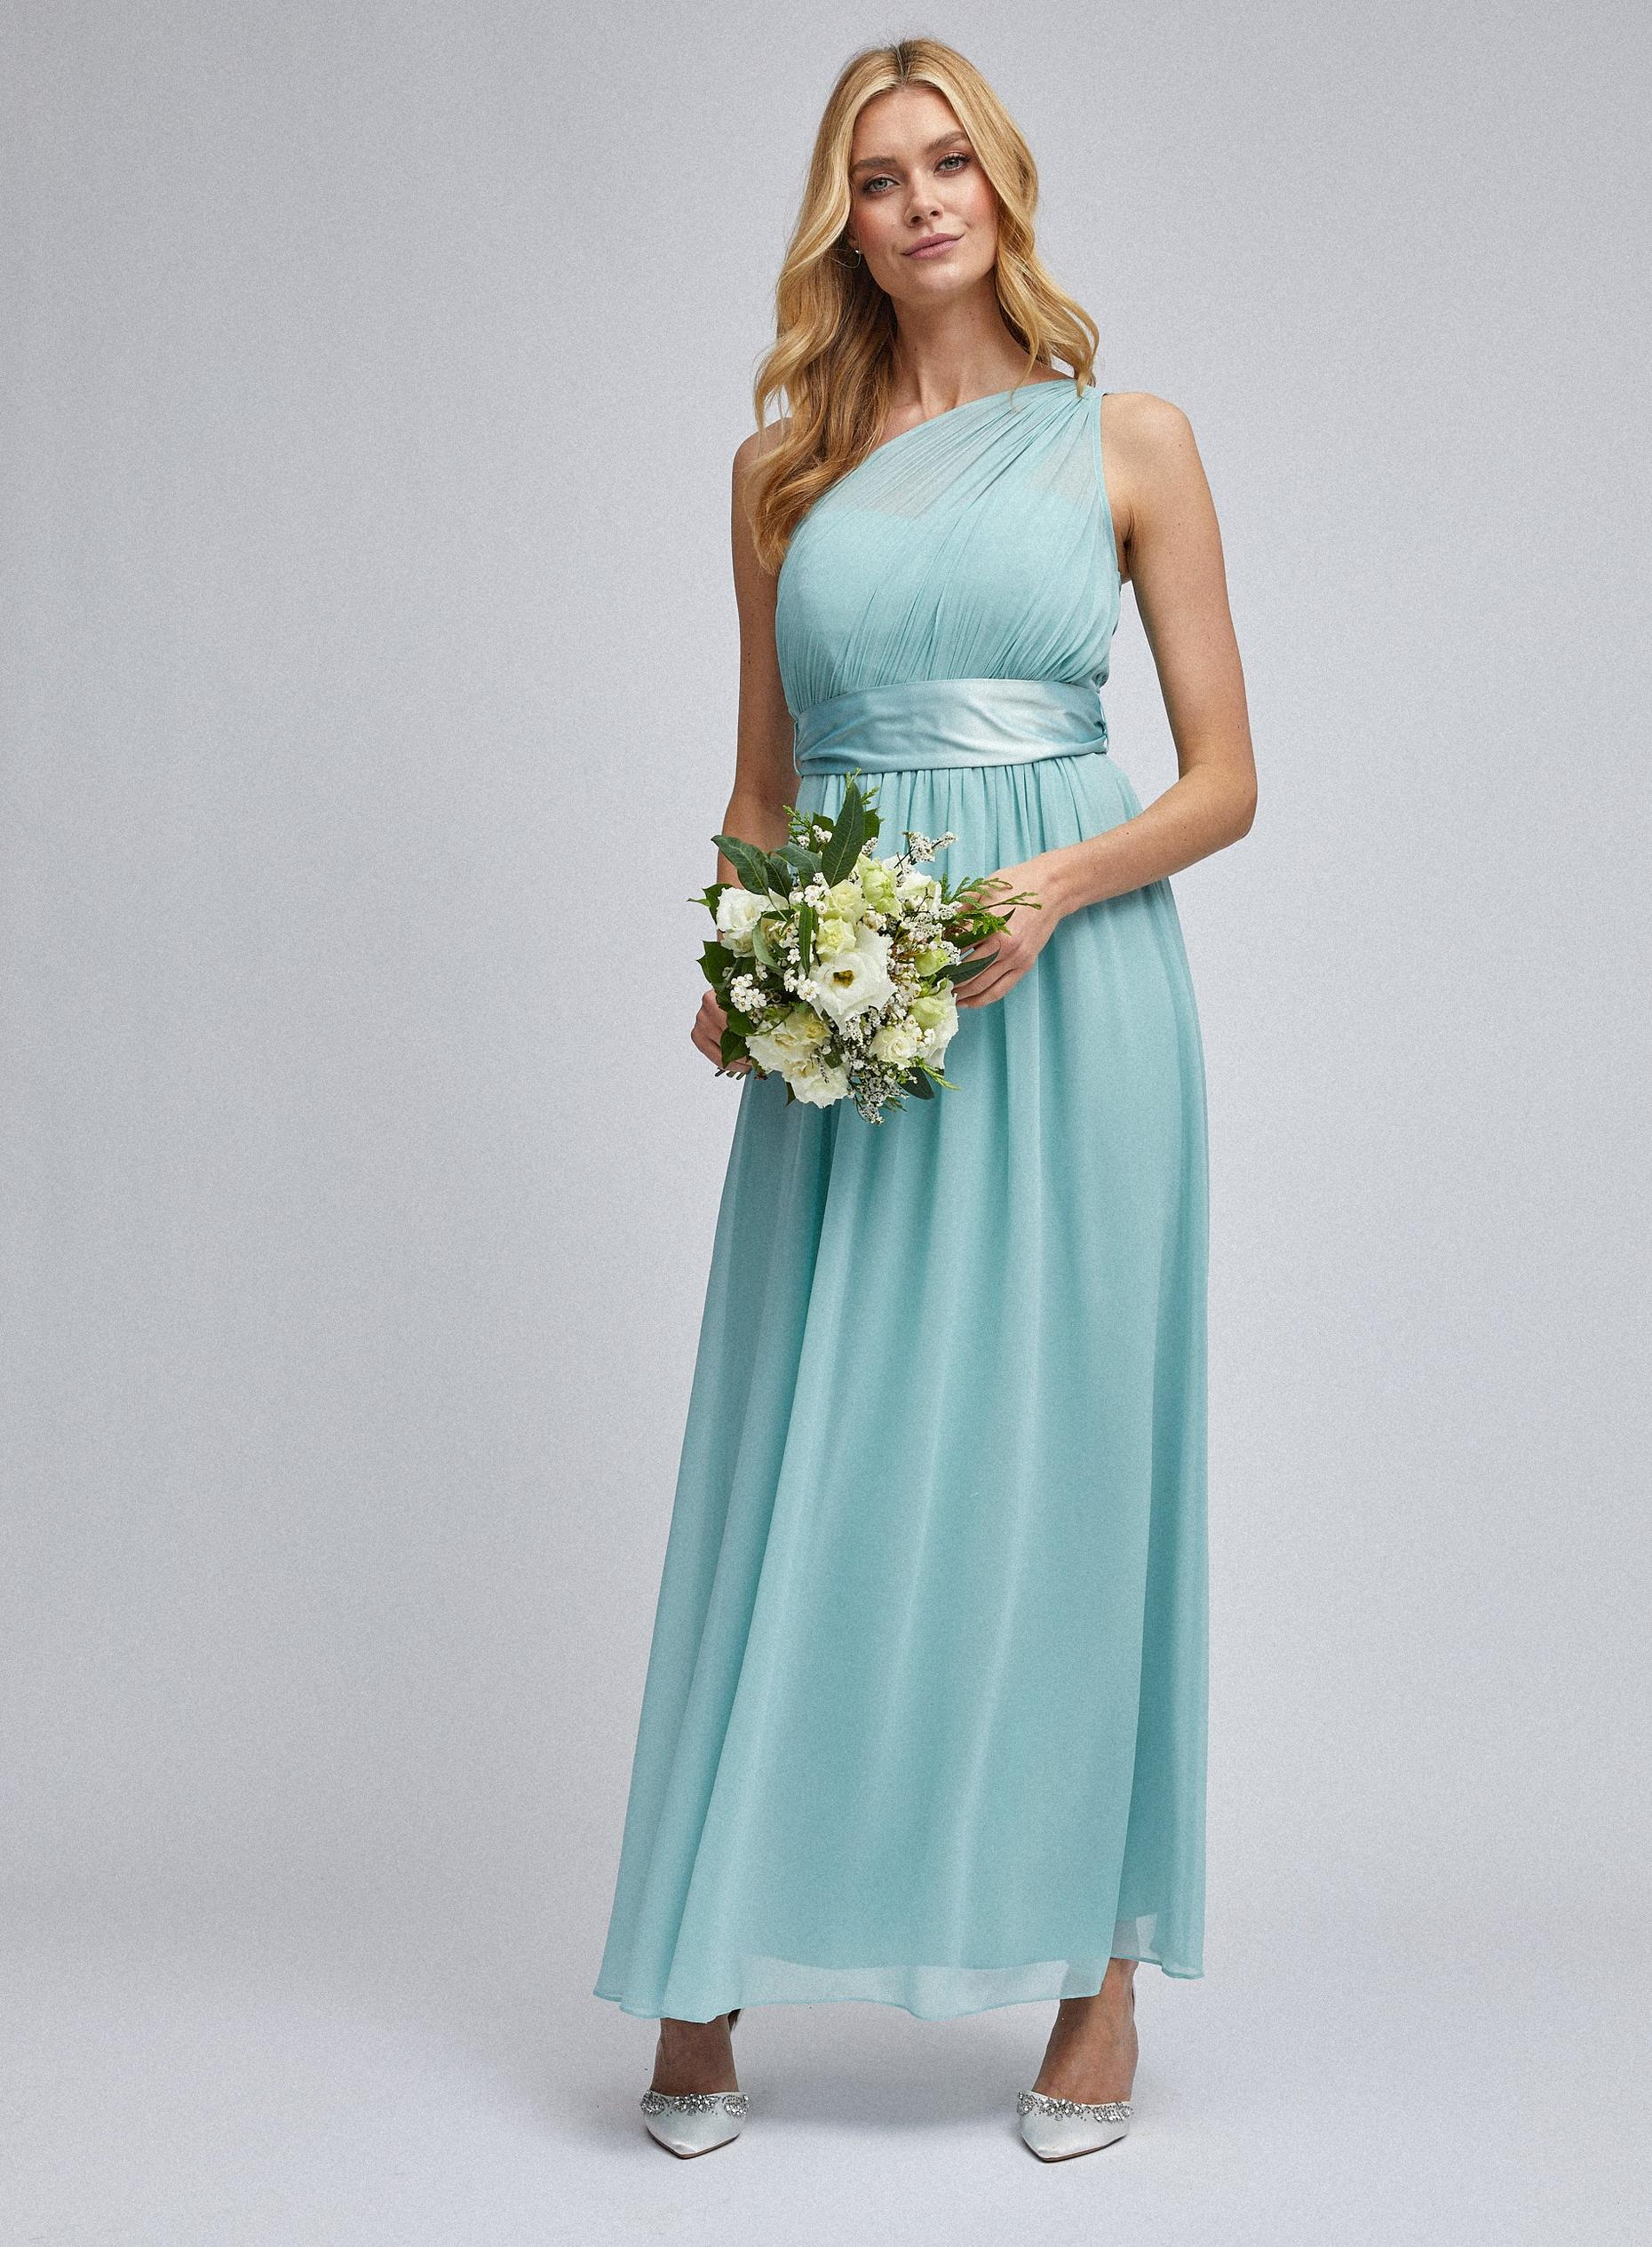 Sadie Thyme Green One Shoulder Maxi Dress